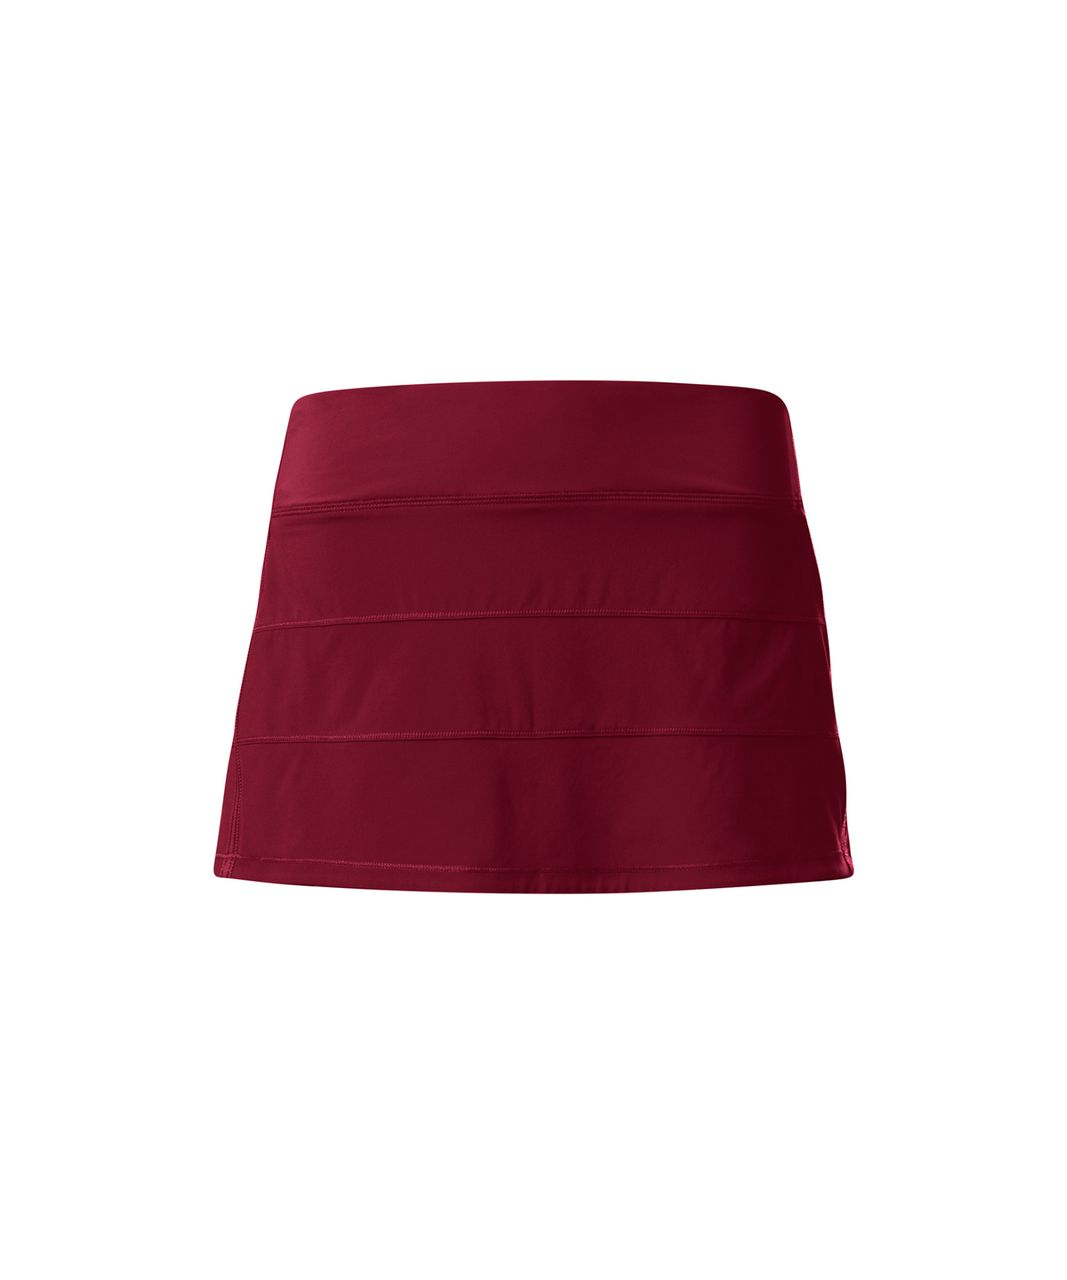 Lululemon Pace Rival Skirt II (Regular) - Rosewood